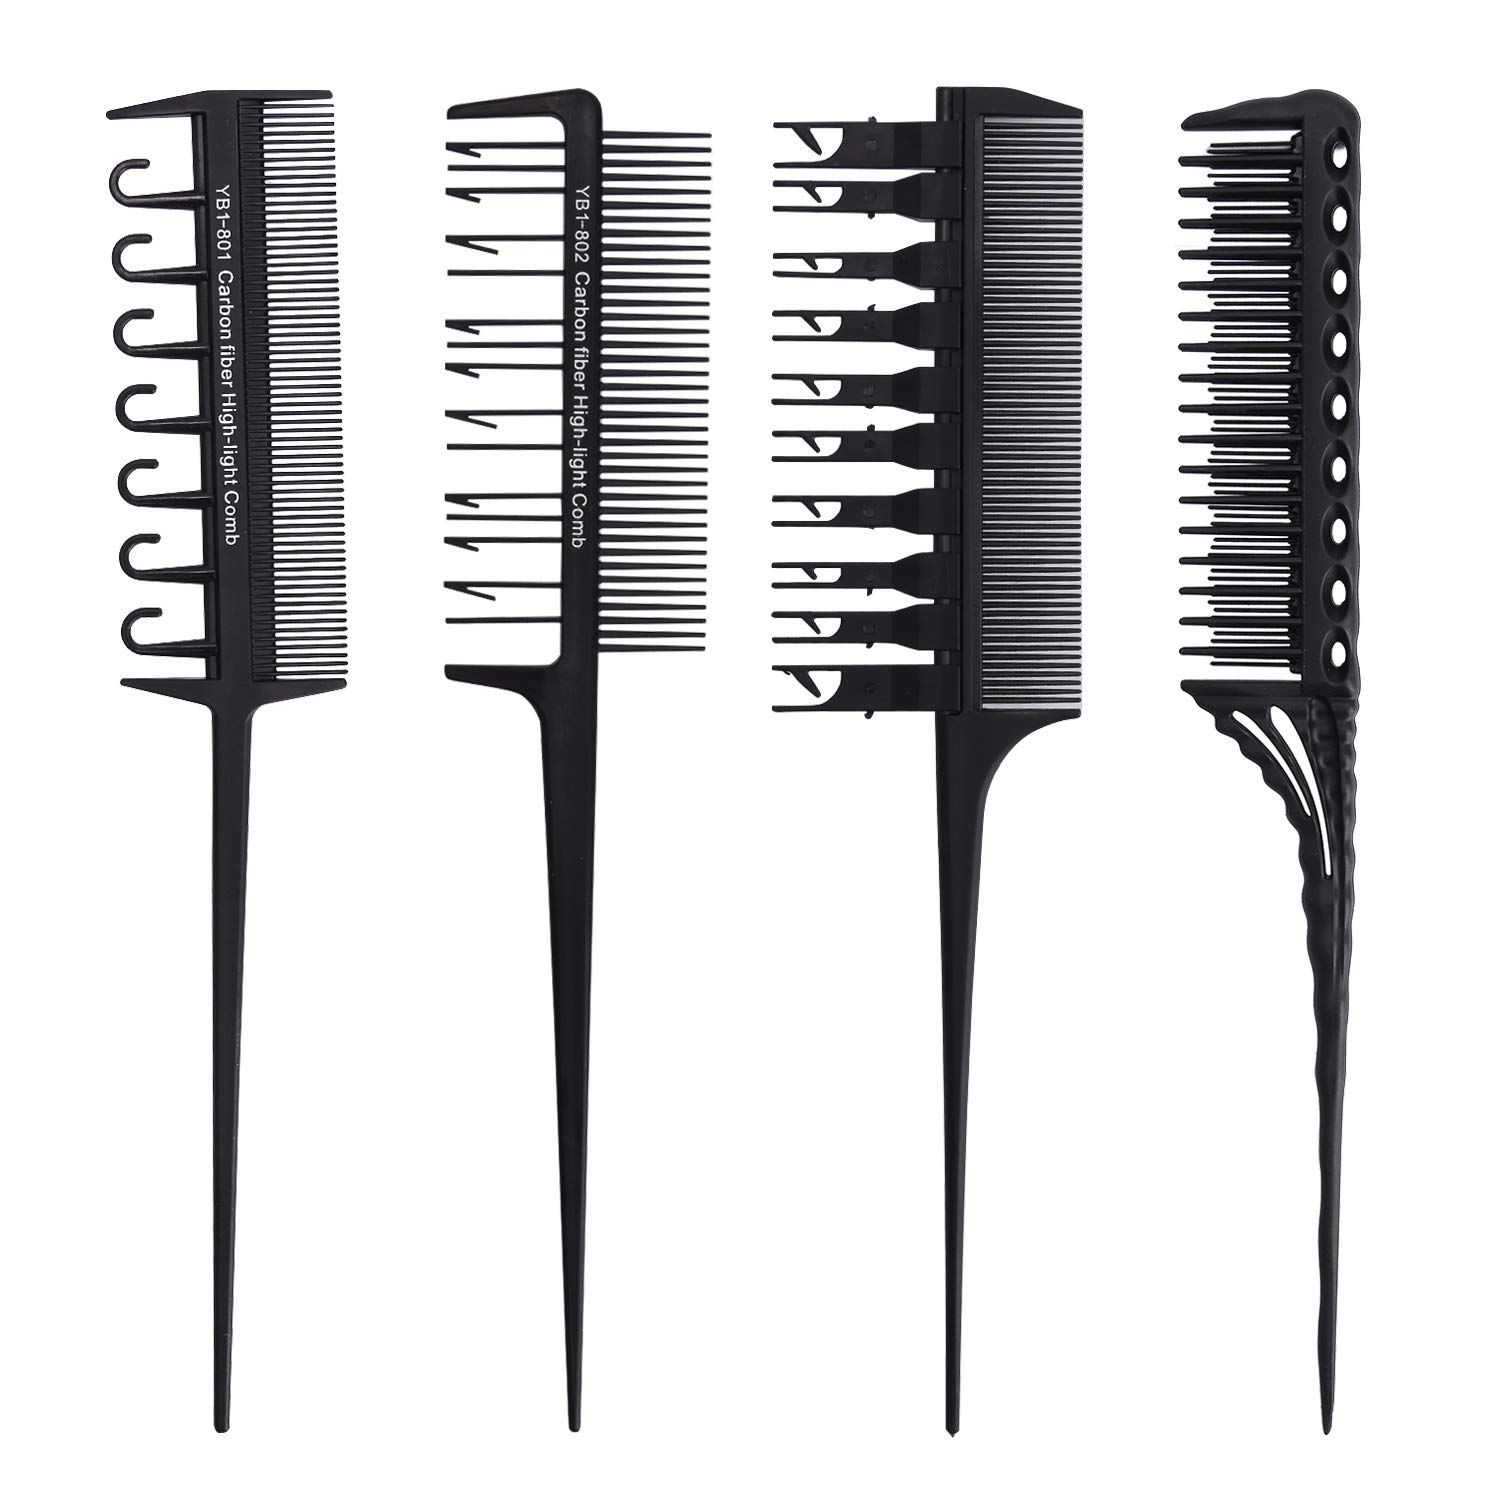 Professional Hair Styling Combs Set Rat Tail Comb Teasing Salon Barber Stylists Hair Dye Coloring Tools Detang Professional Hairstyles Styling Comb Dyed Hair